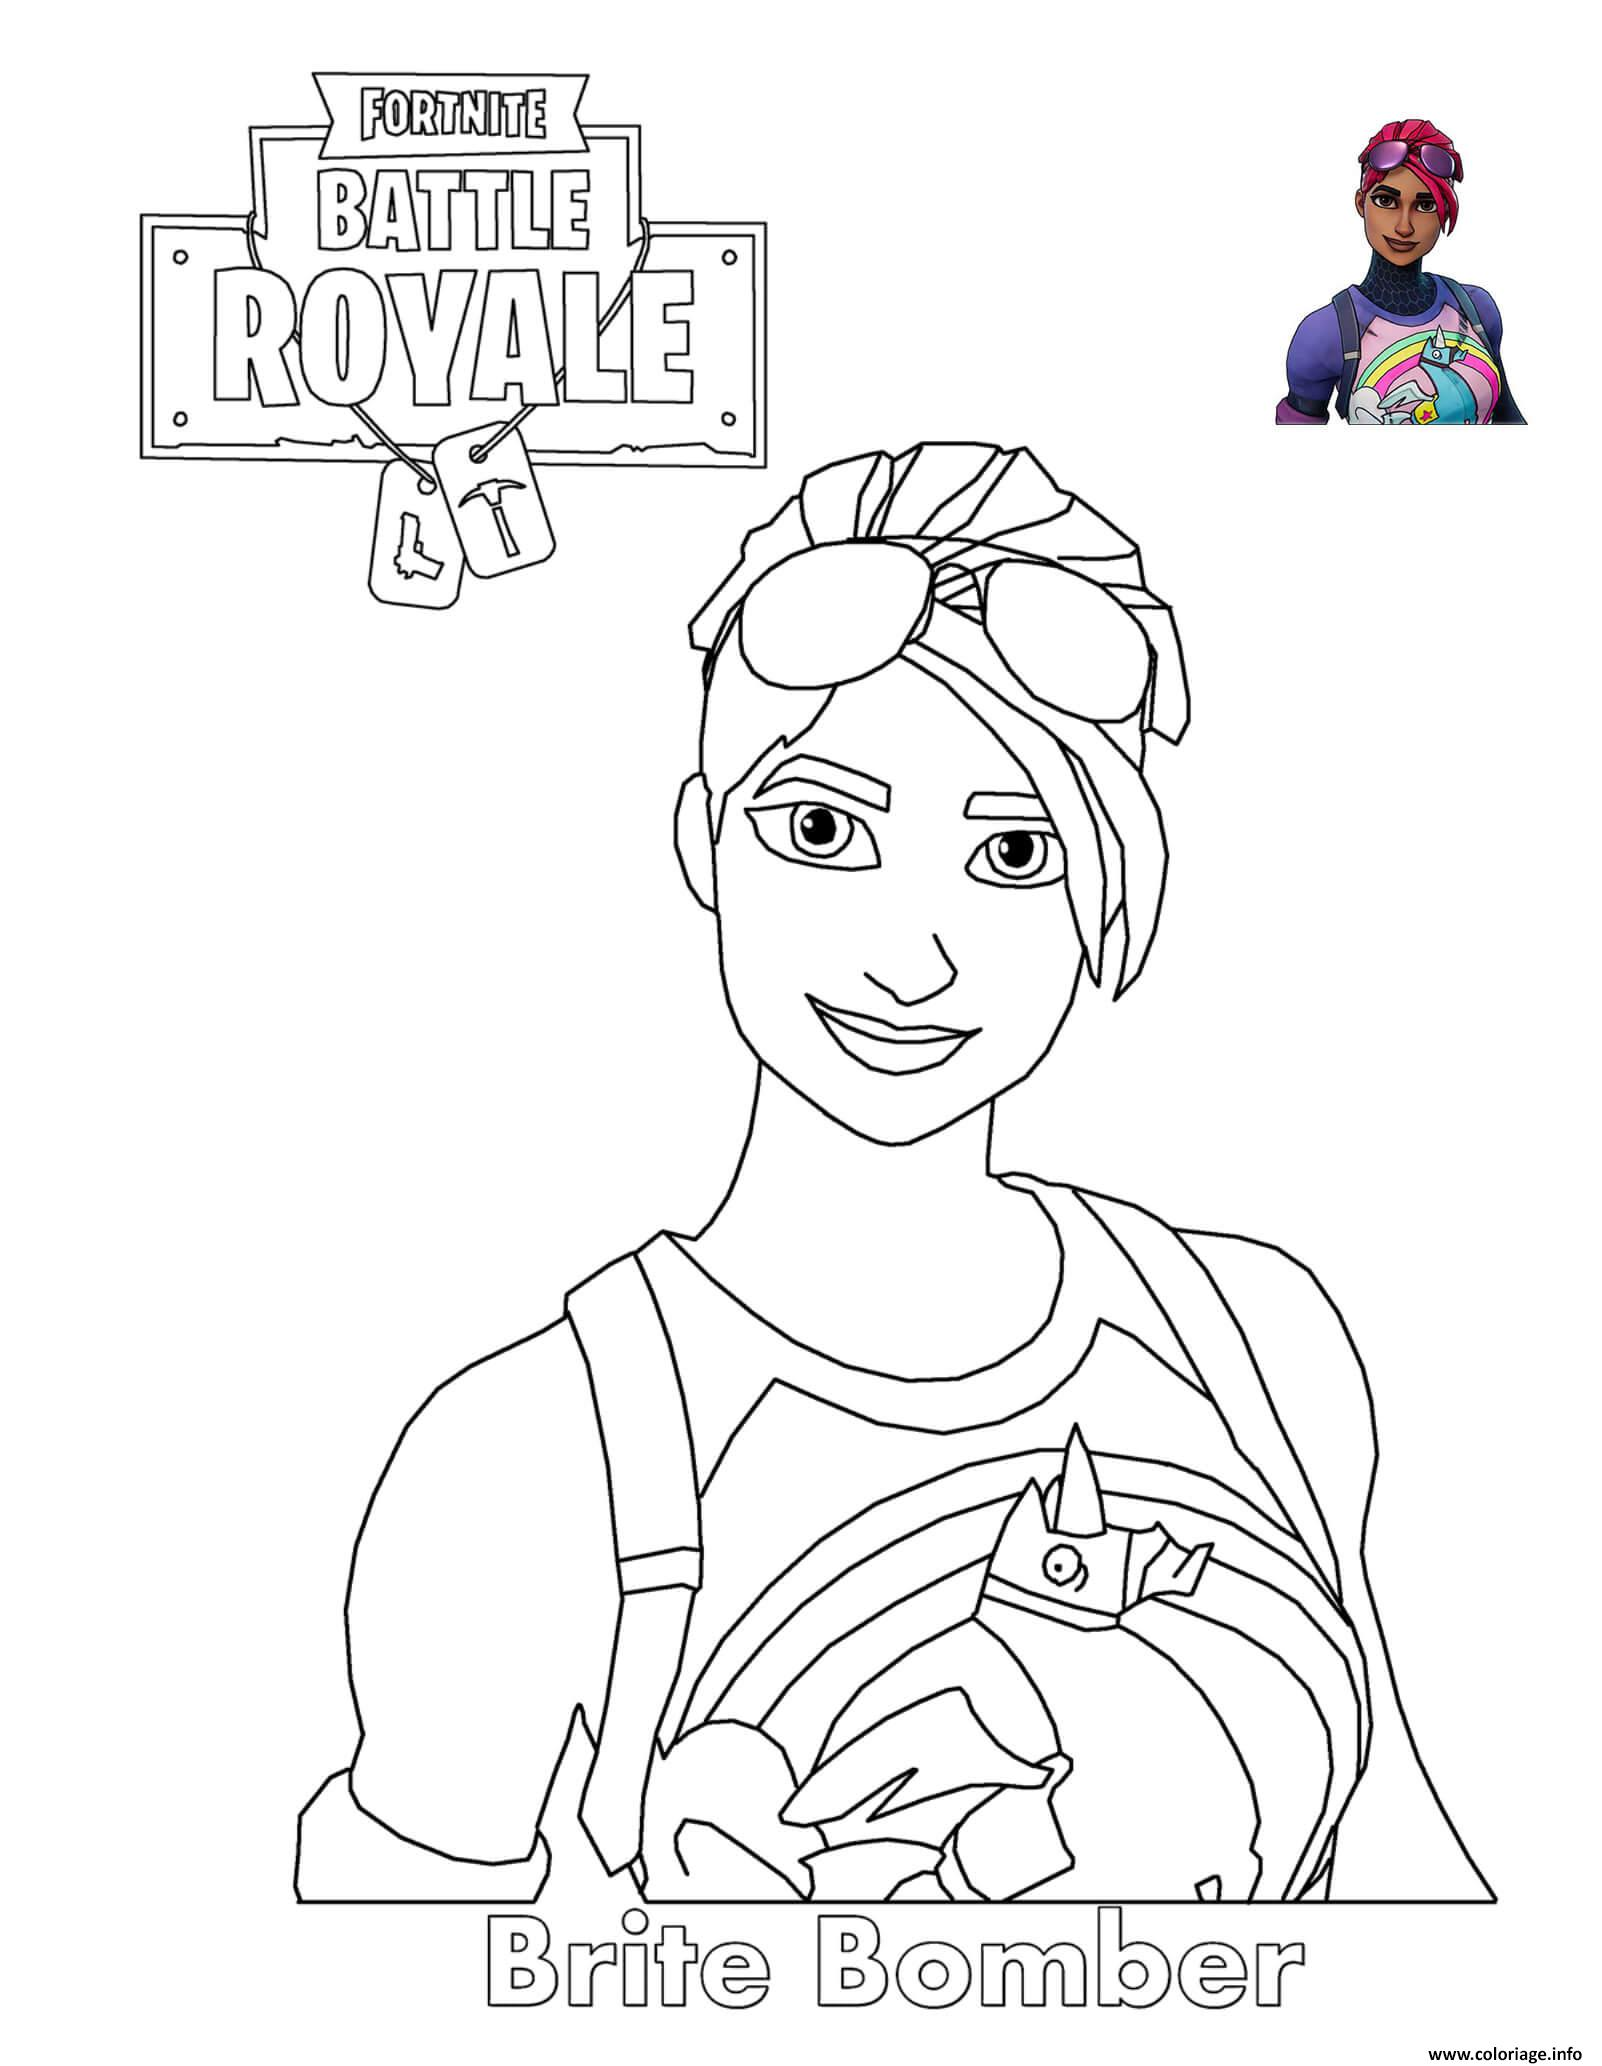 Coloriage Brite Bomber Fortnite Battle Royale Dessin à Imprimer